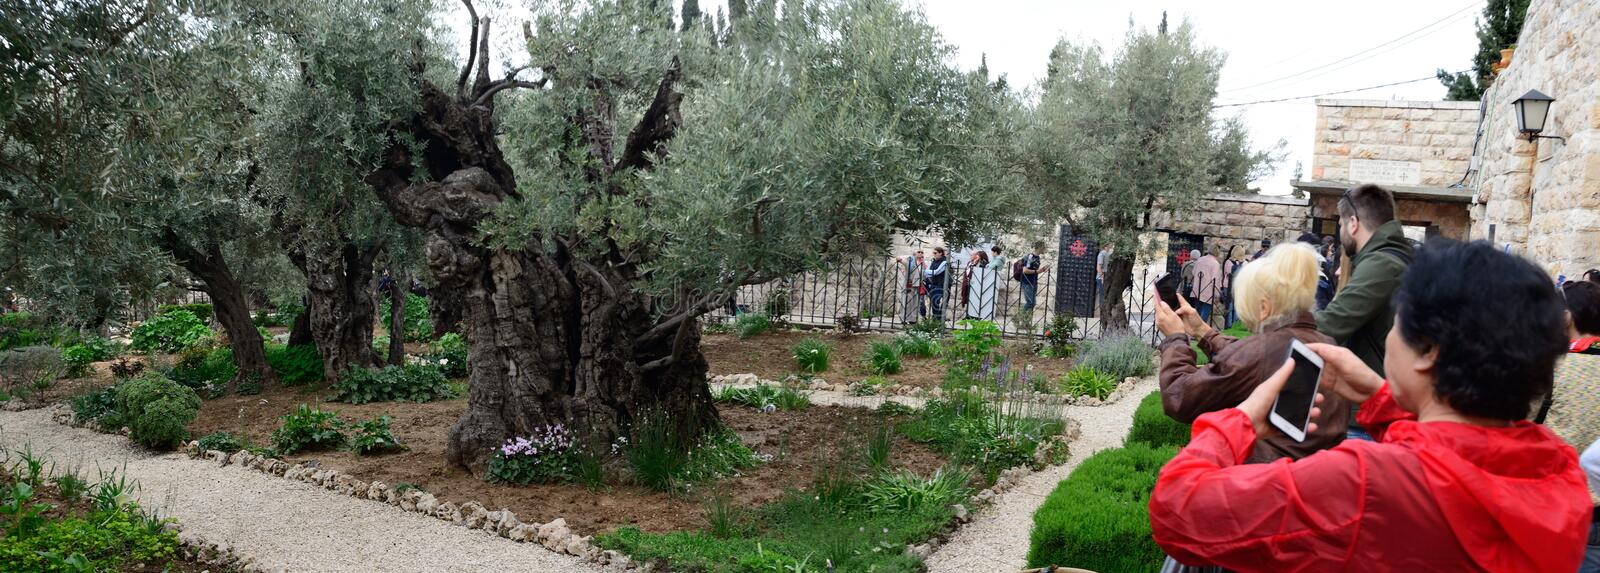 Pilgrims in Gethsemane Garden. Jerusalem. Panorama. The international groups of pilgrims are astonished, paying and taking pictures in the Garden of Gethsemane royalty free stock photo